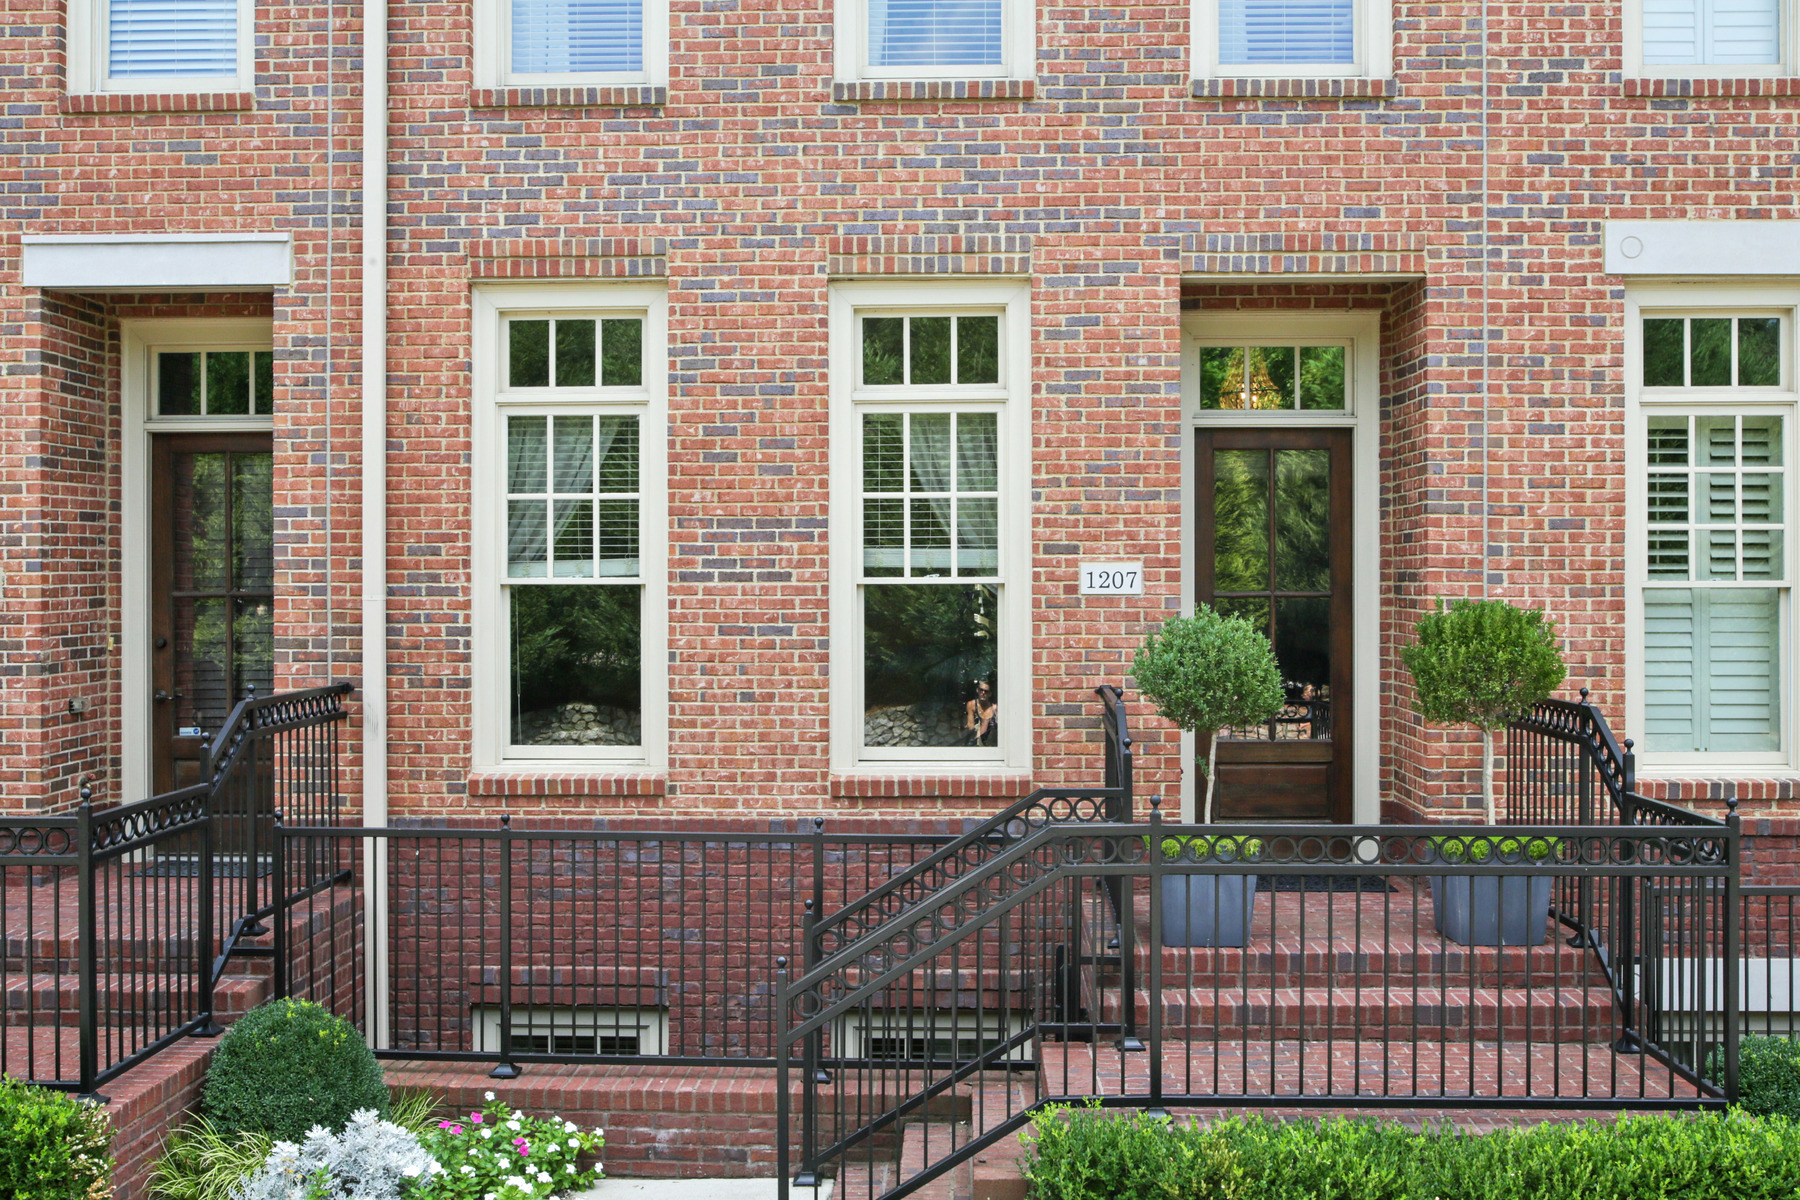 Nhà phố vì Bán tại Beautiful townhome in sought-after school district 1207 Riverscall Lane Atlanta, Georgia, 30339 Hoa Kỳ